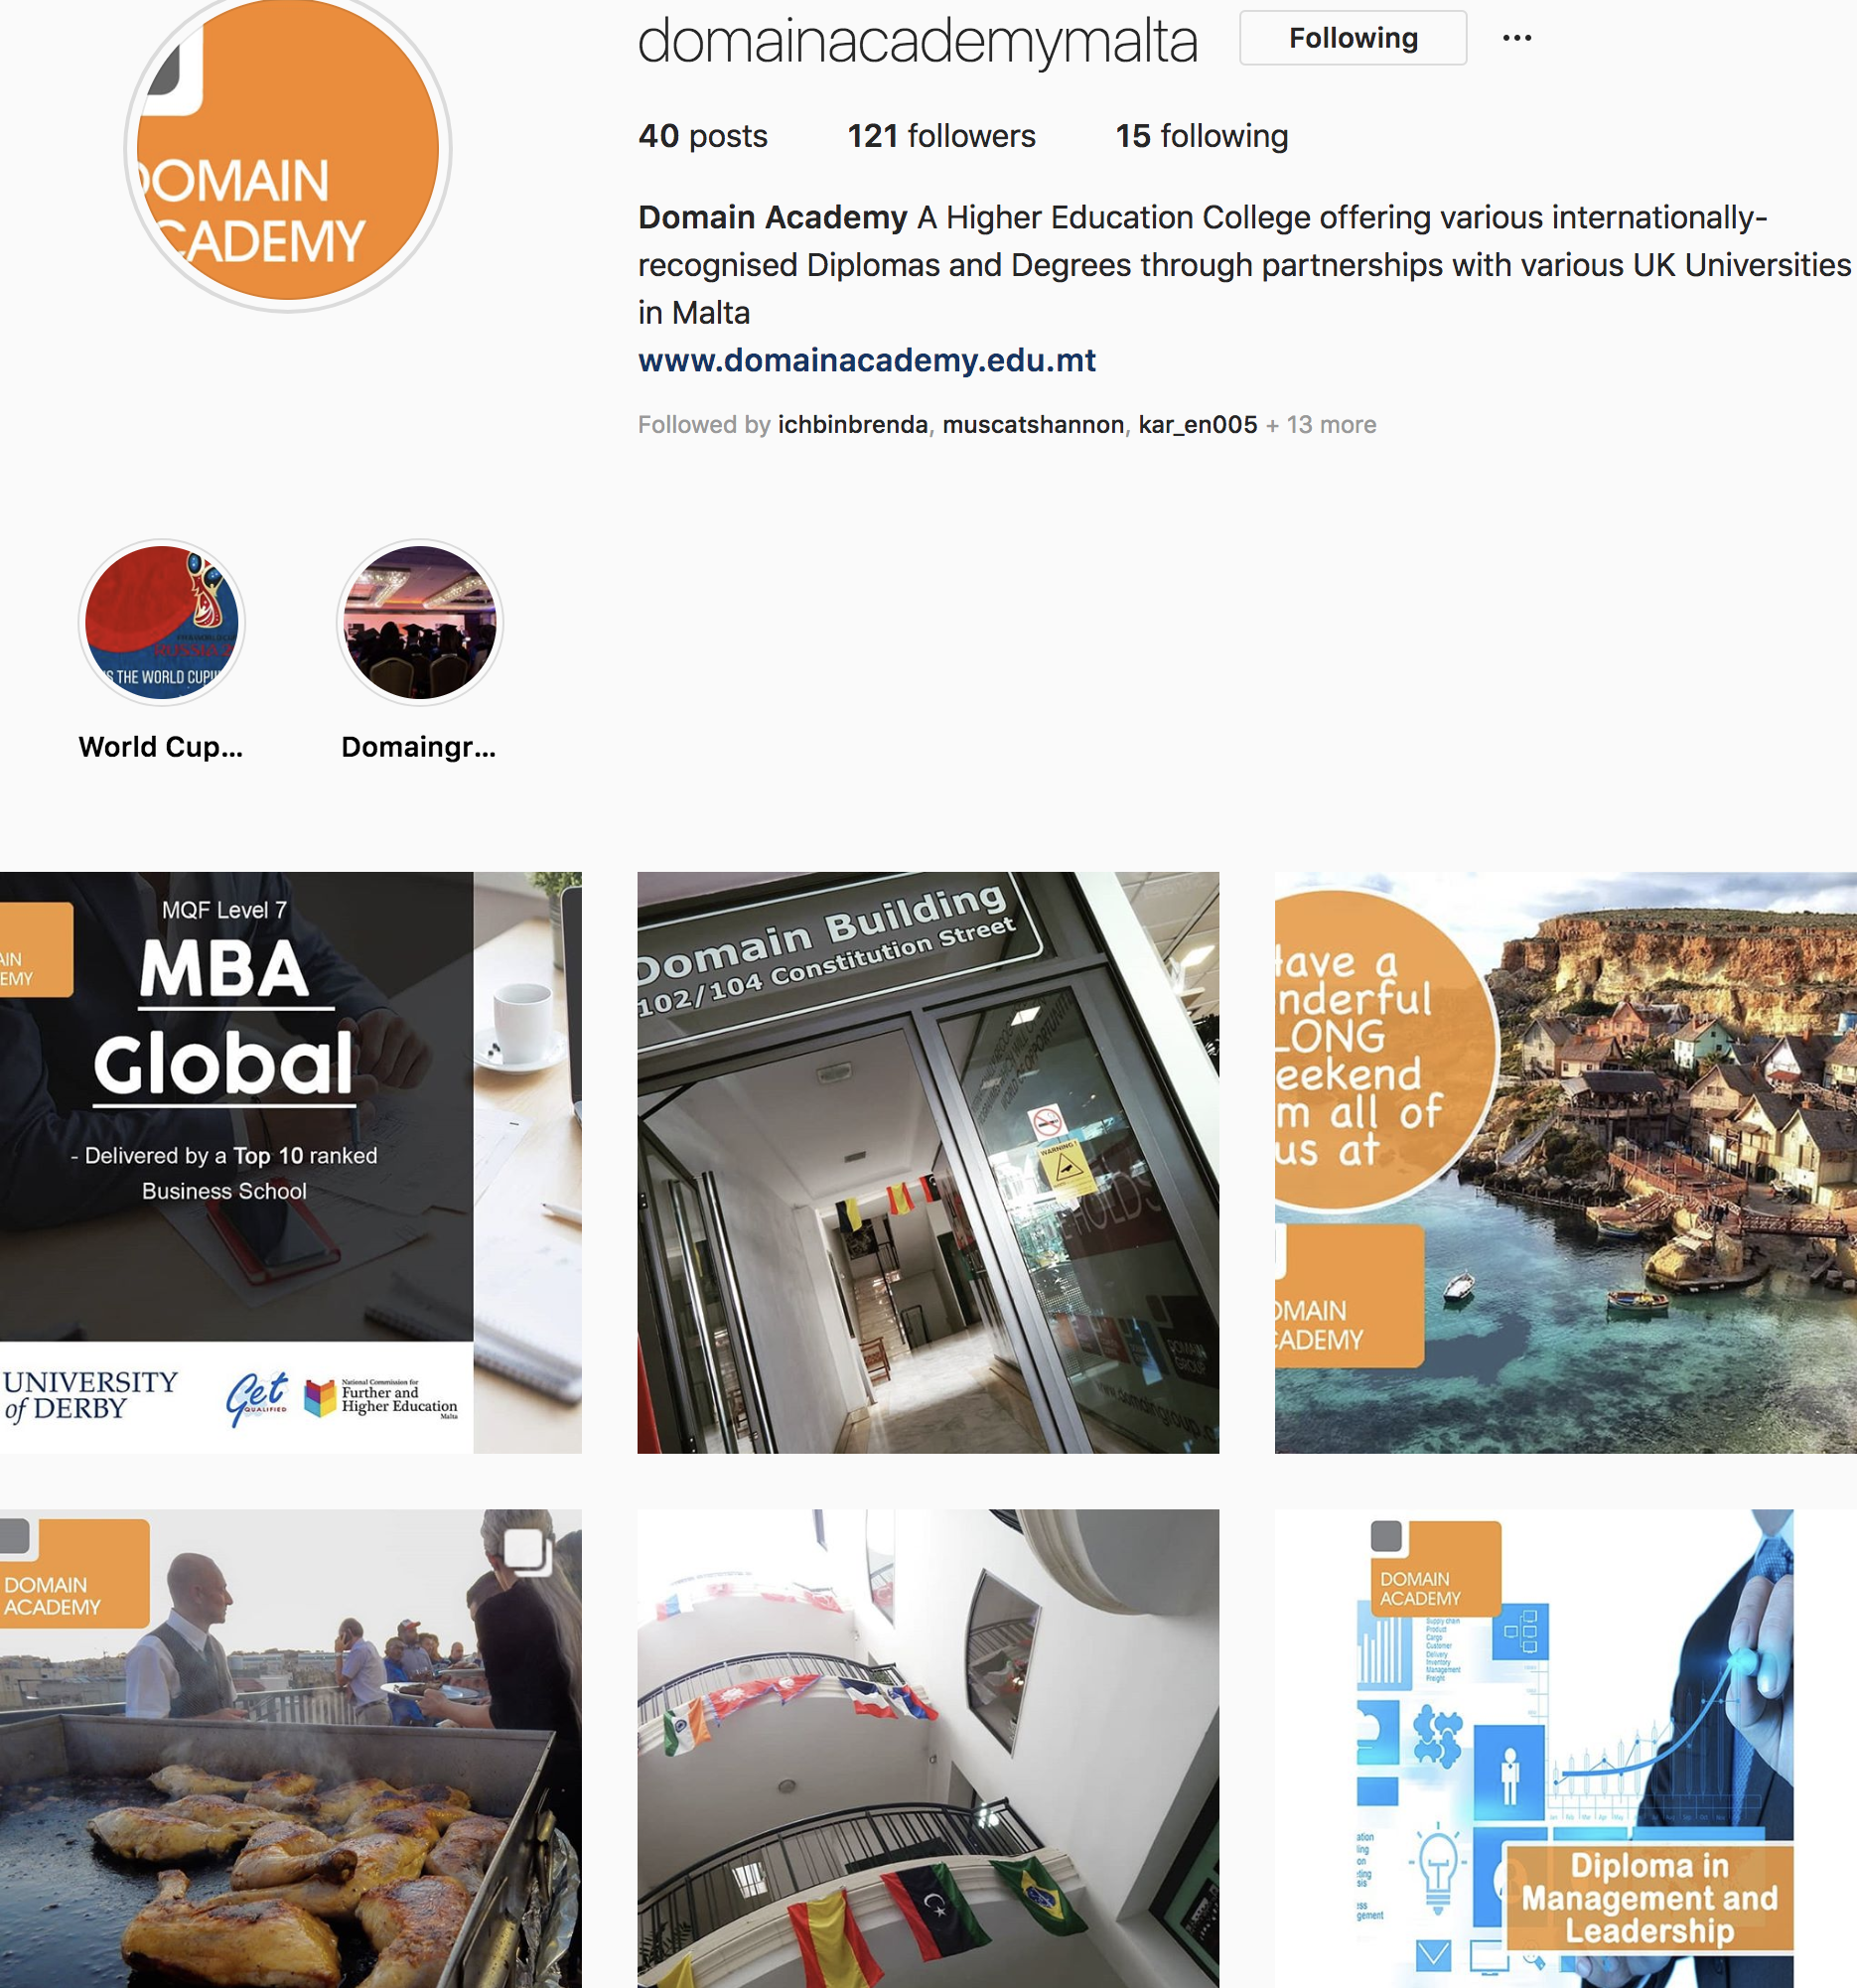 100 Instagram followers reached!!! - Domain Academy